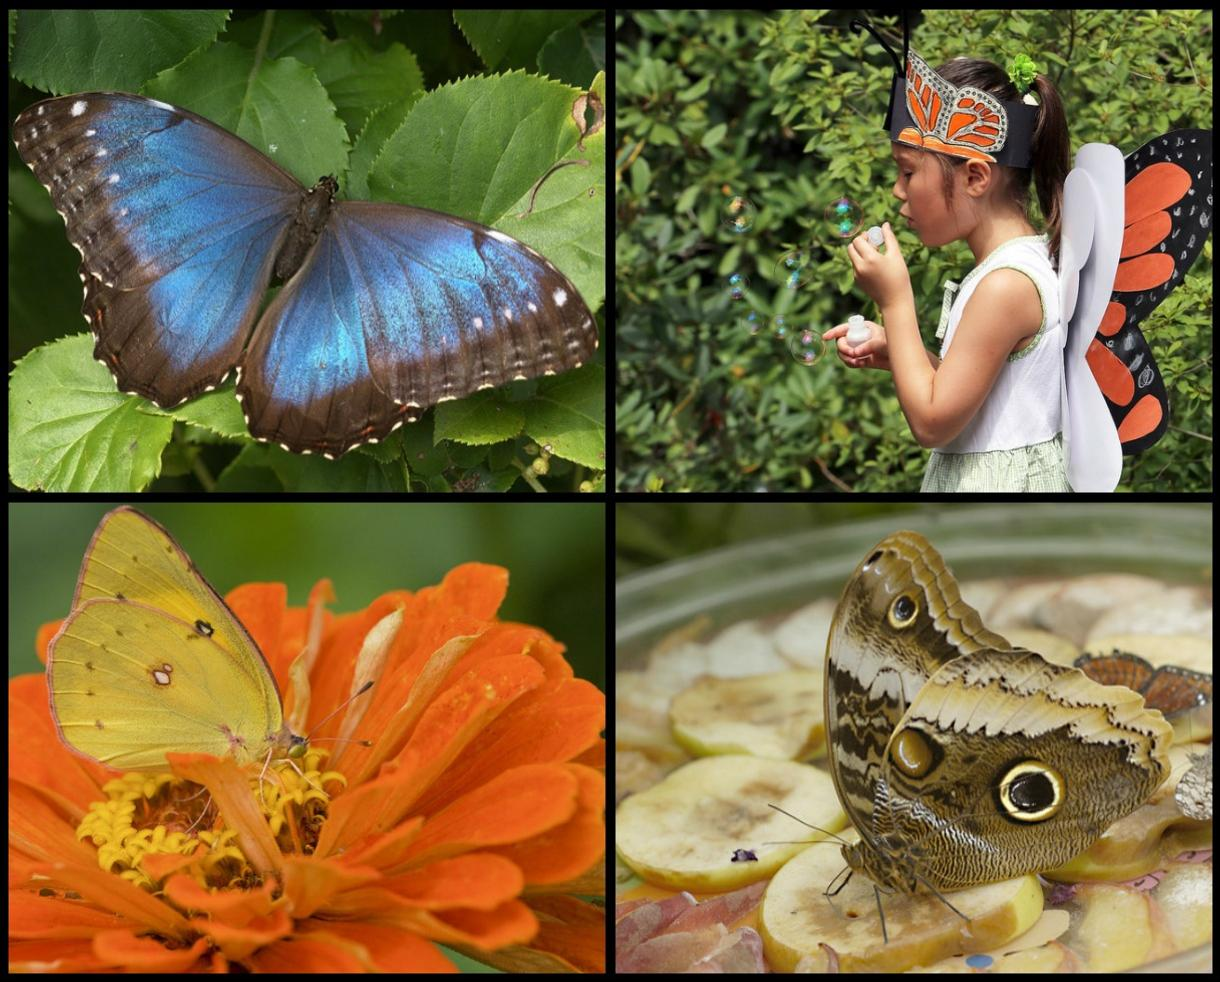 $8 for TWO Admissions to Wings of Fancy Butterfly & Caterpillar Exhibit - Brookside Gardens in Wheaton ($16 Value - Up to 50% Off)